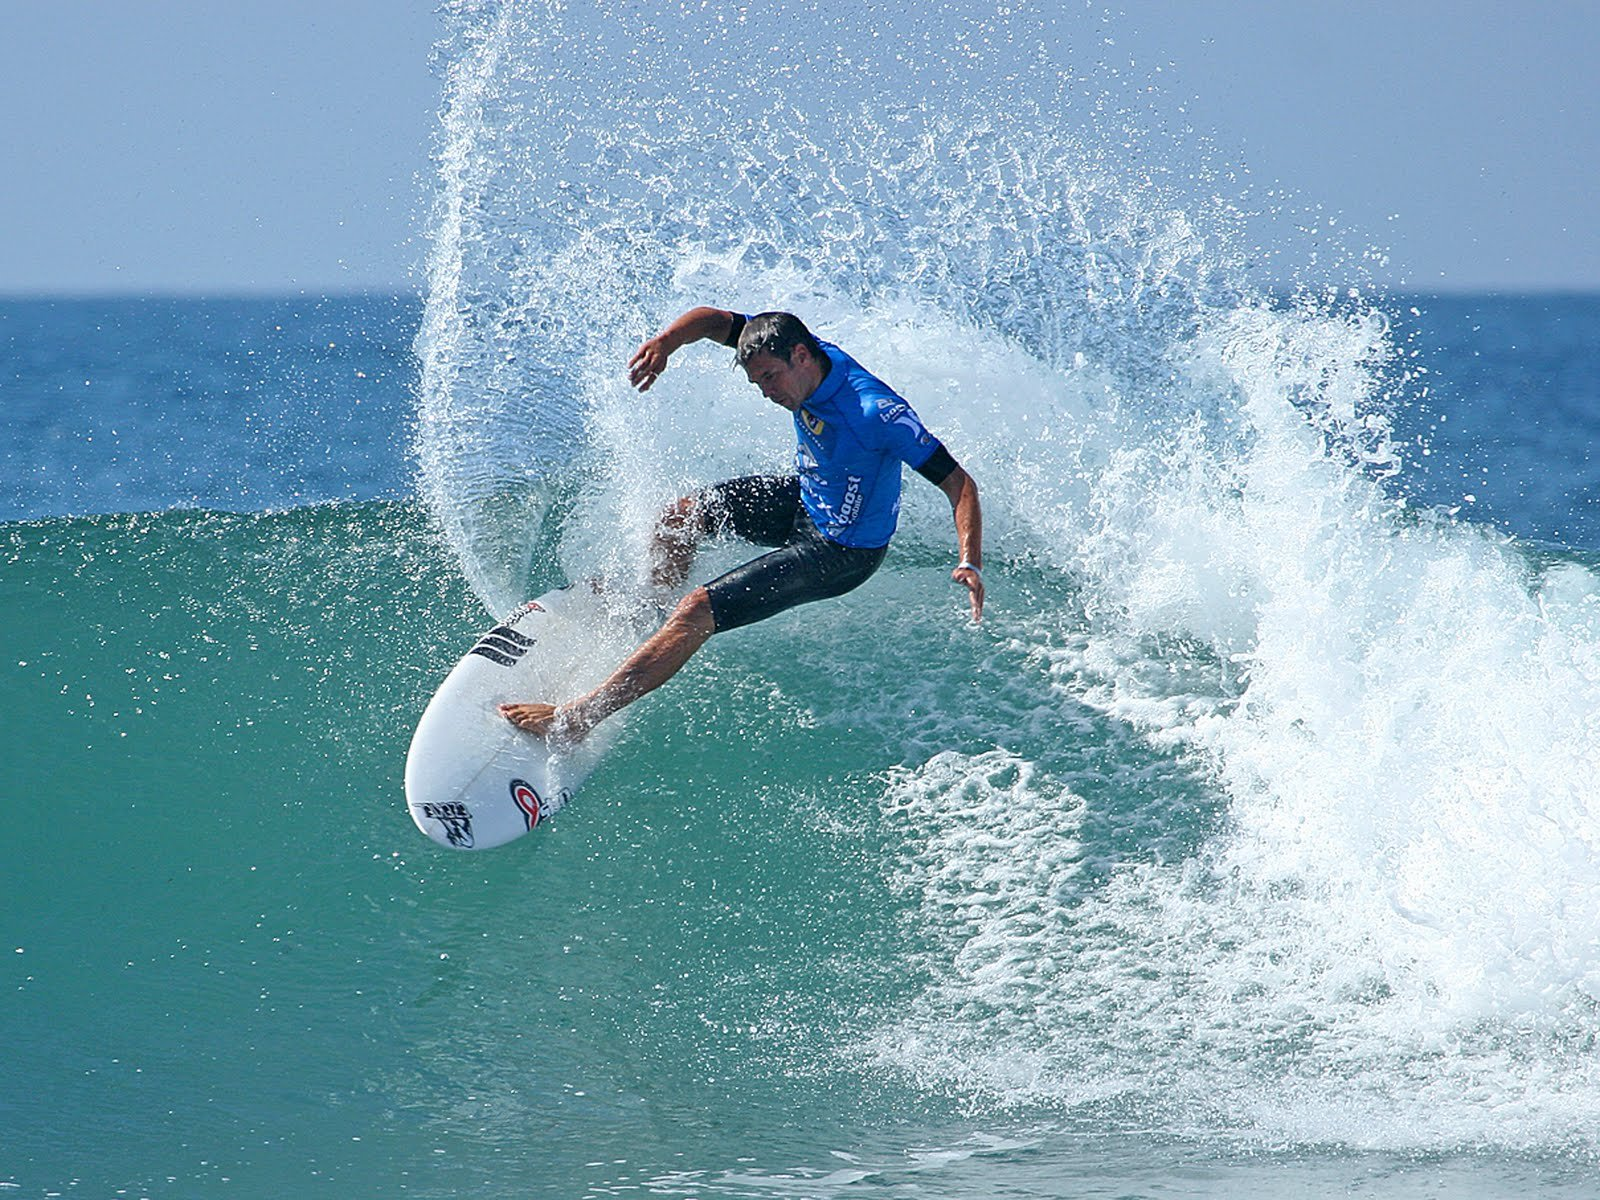 surfing surf ocean sea waves extreme surfer (62)